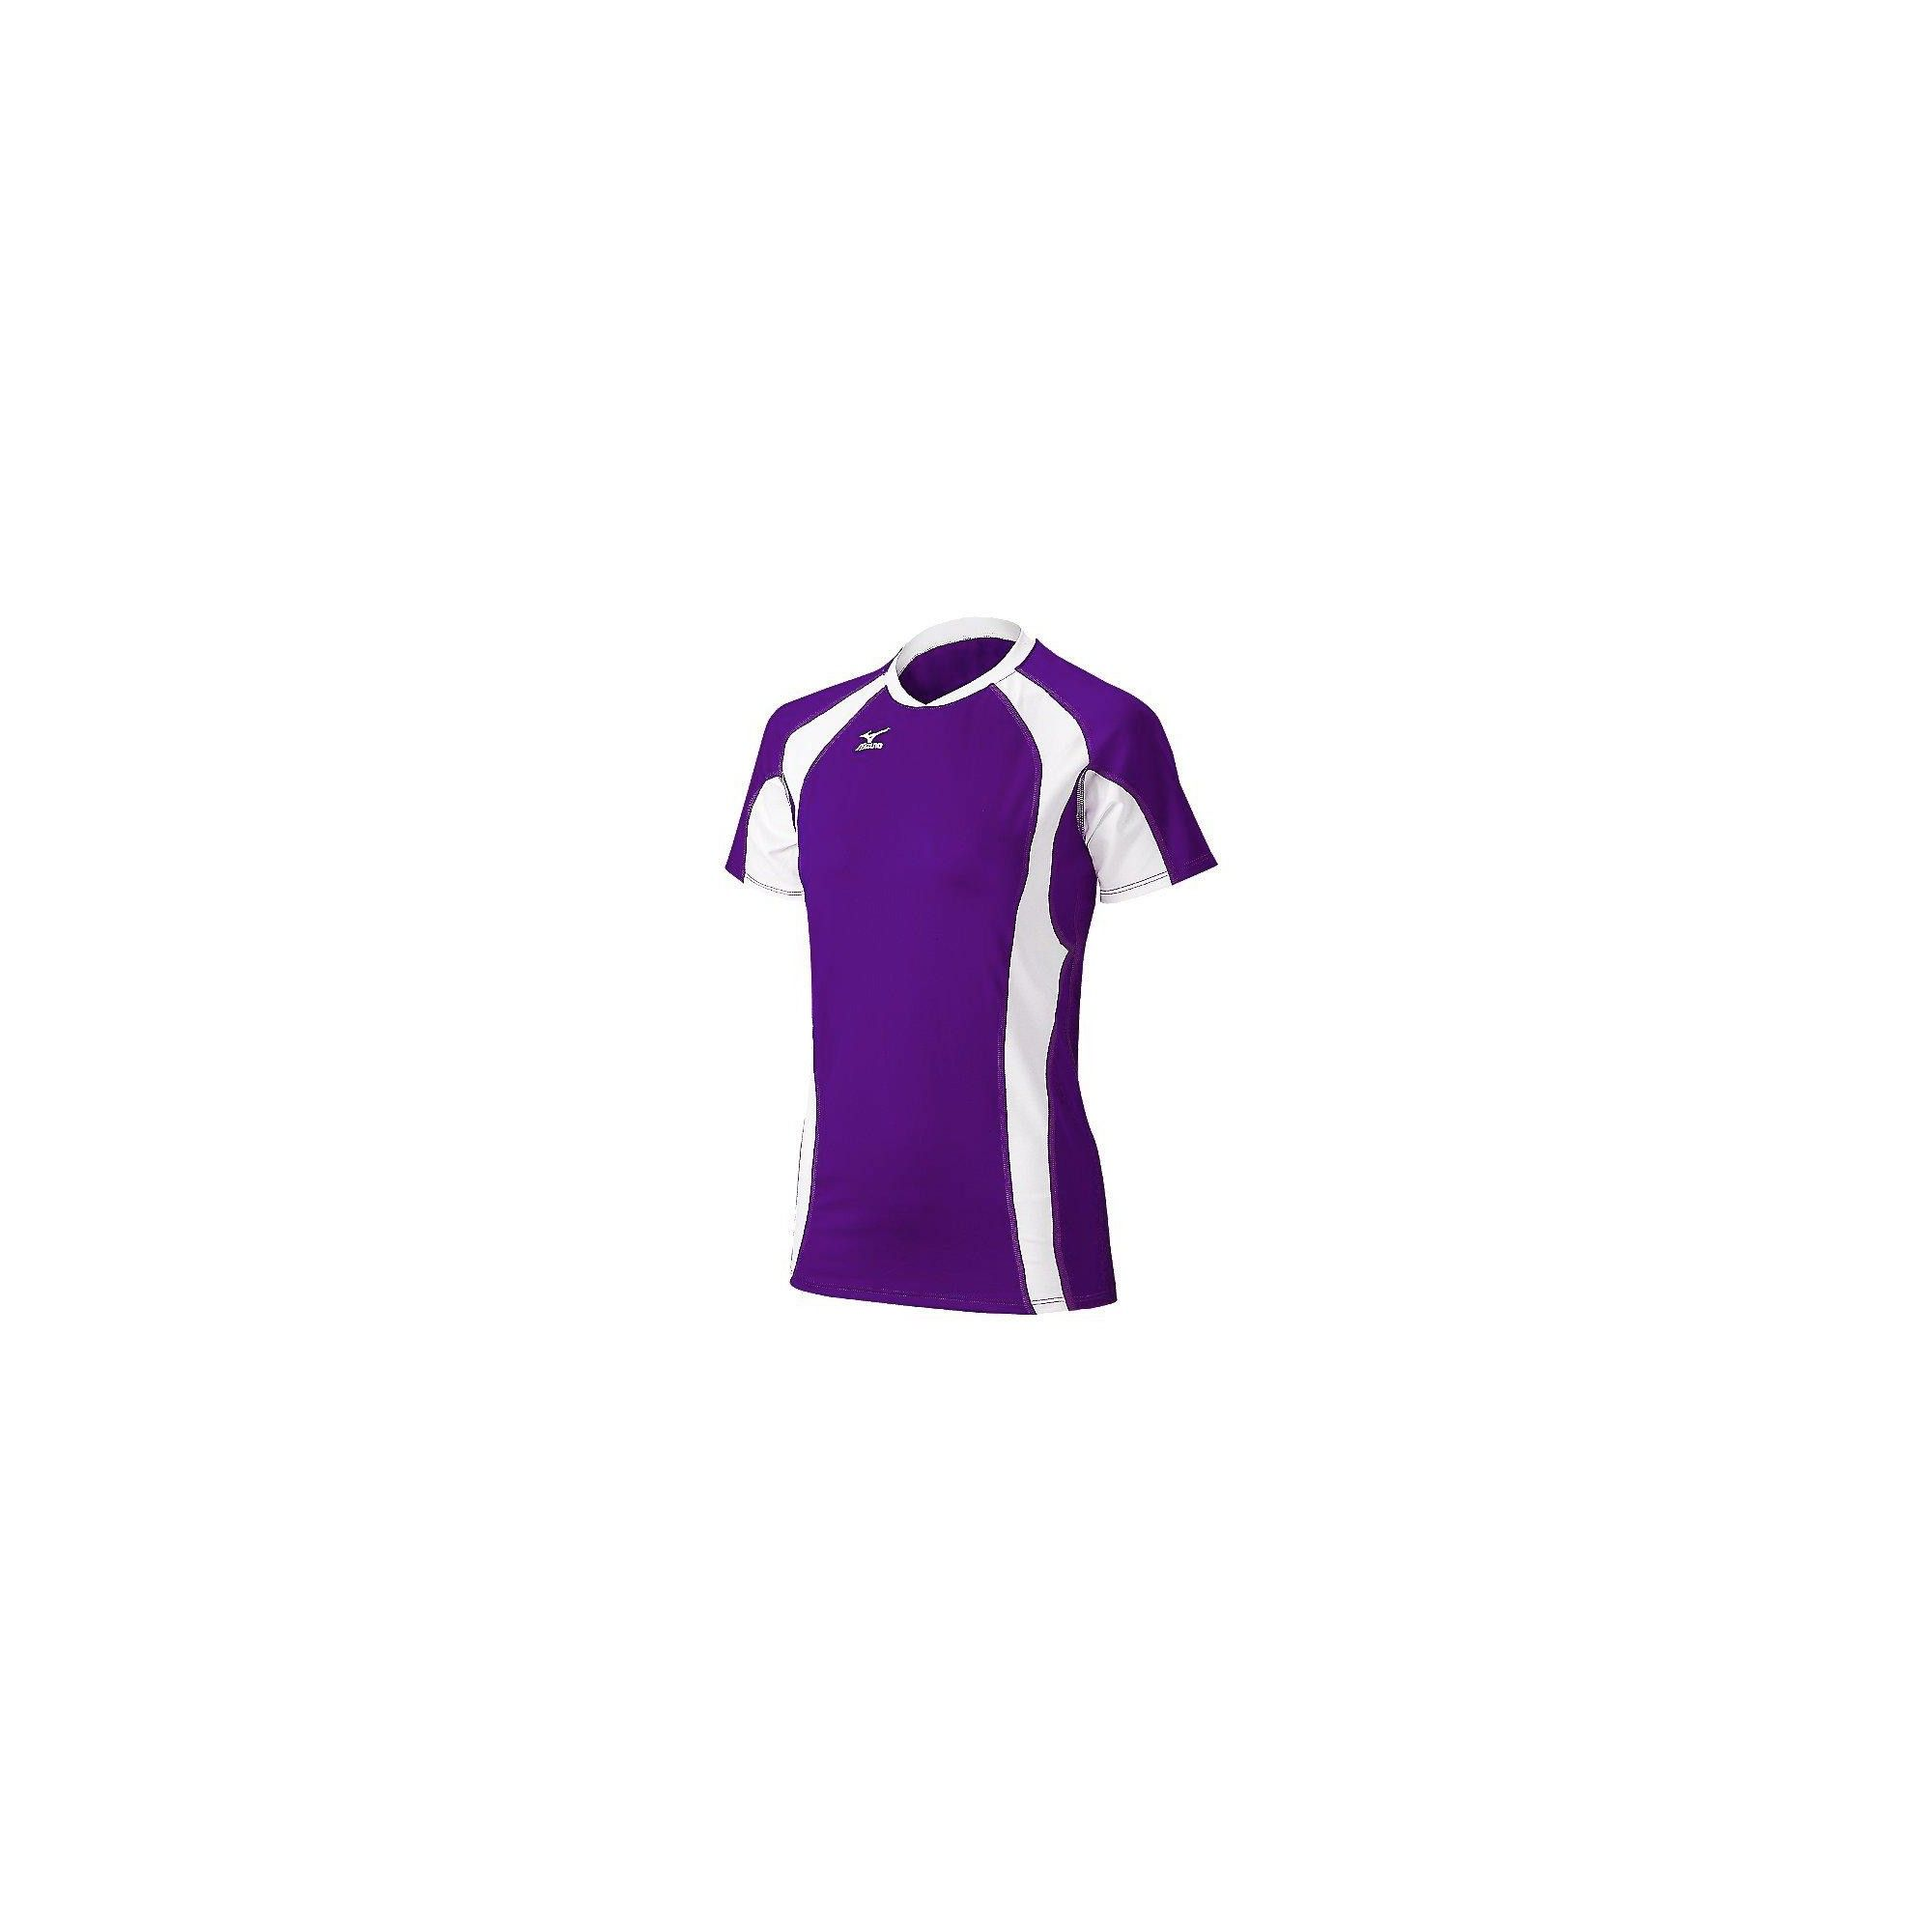 Mizuno Women S Techno Volley V Short Sleeve Volleyball Jersey Size Extra Small In Color Purple White 6 Volleyball Outfits Volleyball Jerseys Women Volleyball